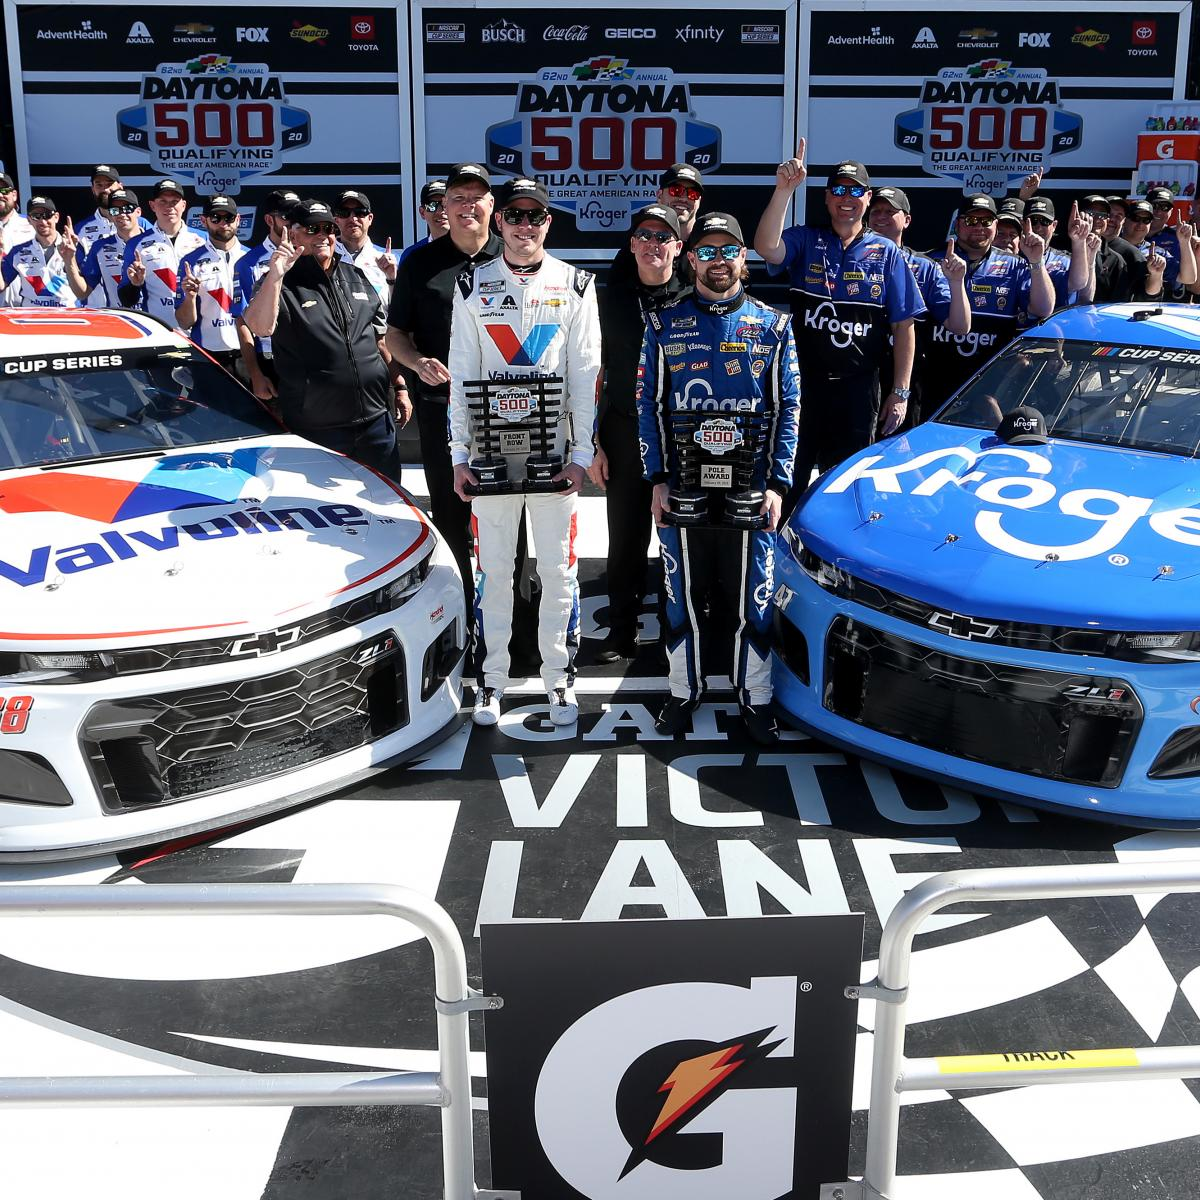 Daytona 500 Qualifying 2020 Results and Latest Driver Odds